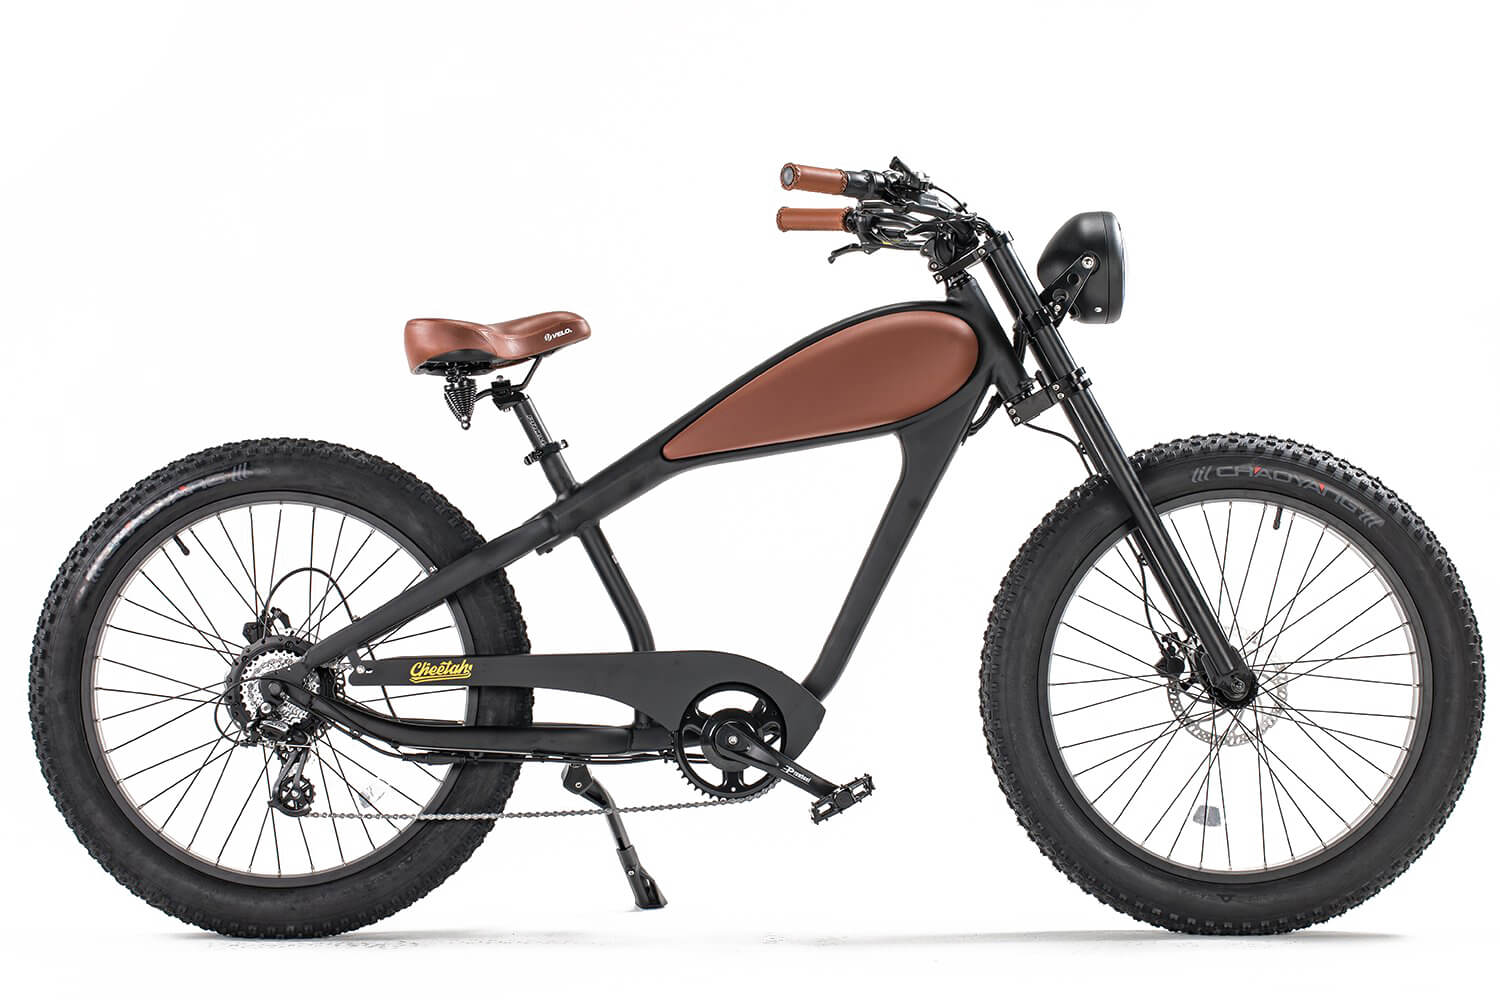 [Pre-Order] CIVI Bikes (REVI Bikes) Cheetah - The Cafe Racer Cruiser Fat Tire Electric Bike